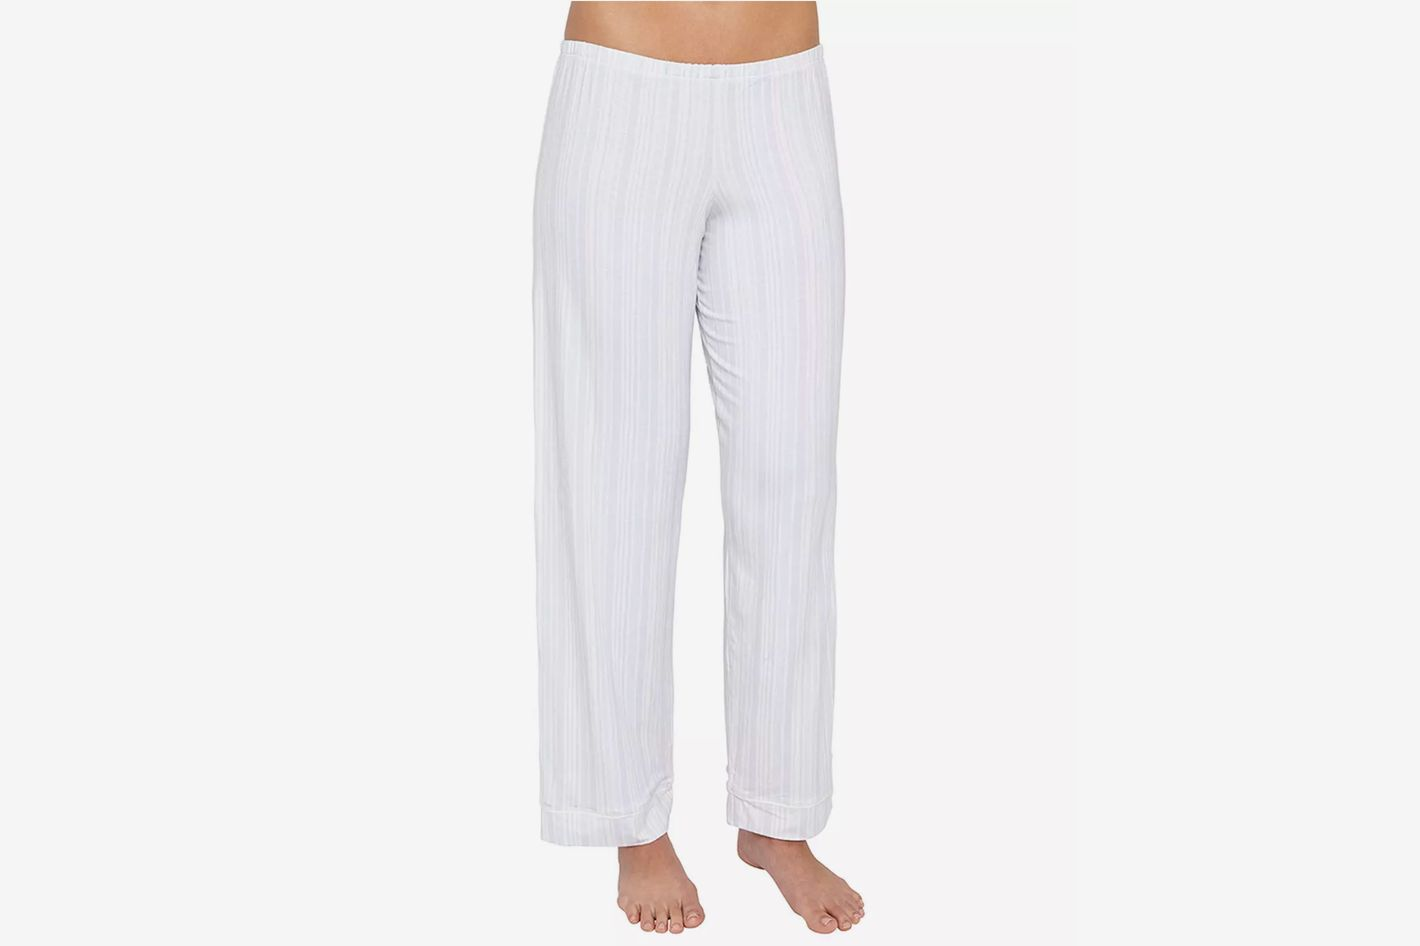 Eberjey Painted Striped Pajama Pants